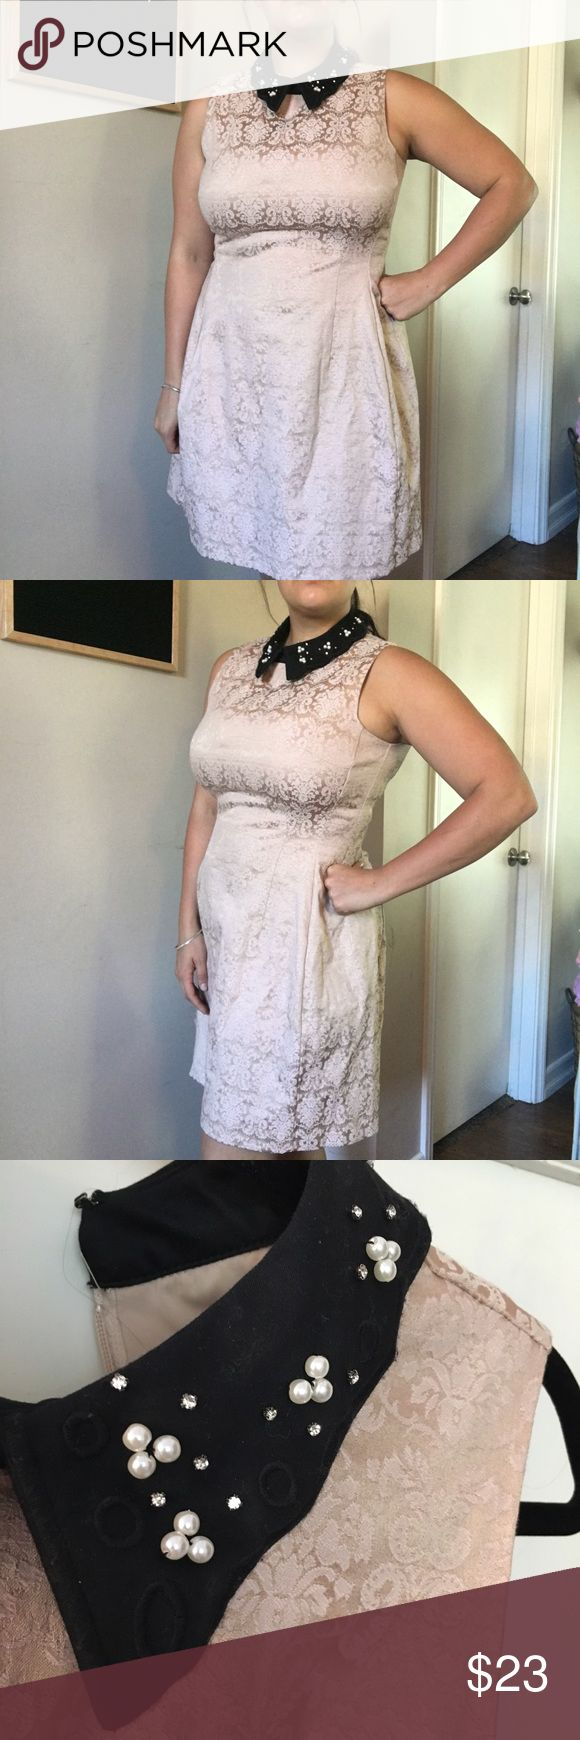 New York & Company/Eva Mendes collared dress I absolutely fell in love with this dress the moment I saw it! So elegant, very detailed, and sophisticated. Embellished collar with diamonds and pearls and hugs my size 12 body perfectly. I would wear with a pair of plain black shoes. New York & Company Dresses Midi